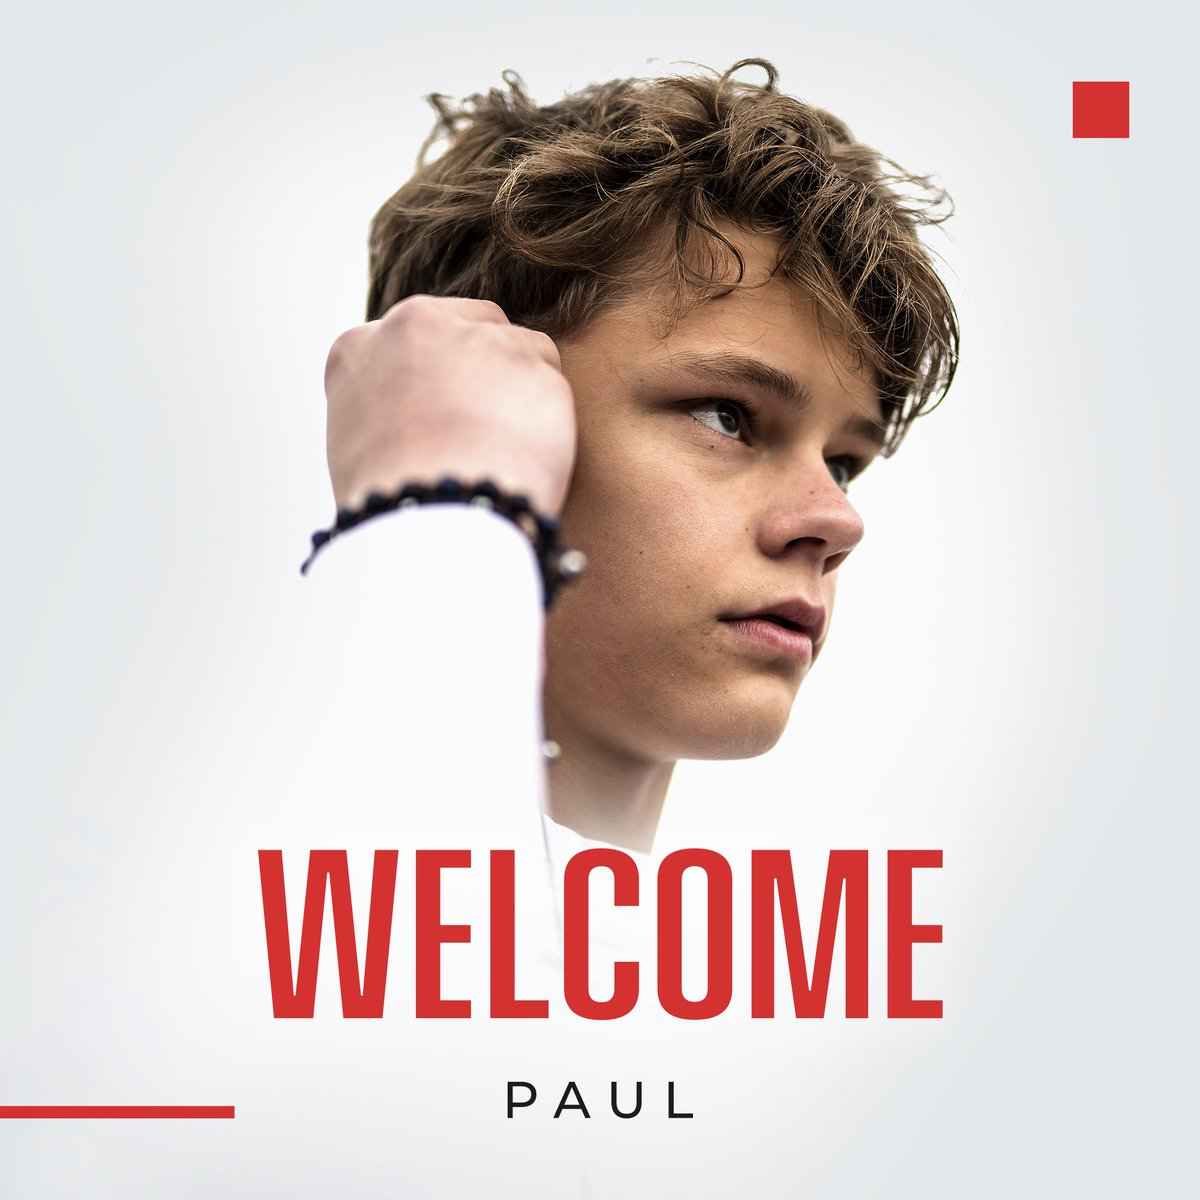 🚨 Announcement 🚨  @PaulAron16 signs with ART Grand Prix for 2020 #FormulaRenault Eurocup https://bit.ly/2wmE7Vr  @RenaultSpSeries